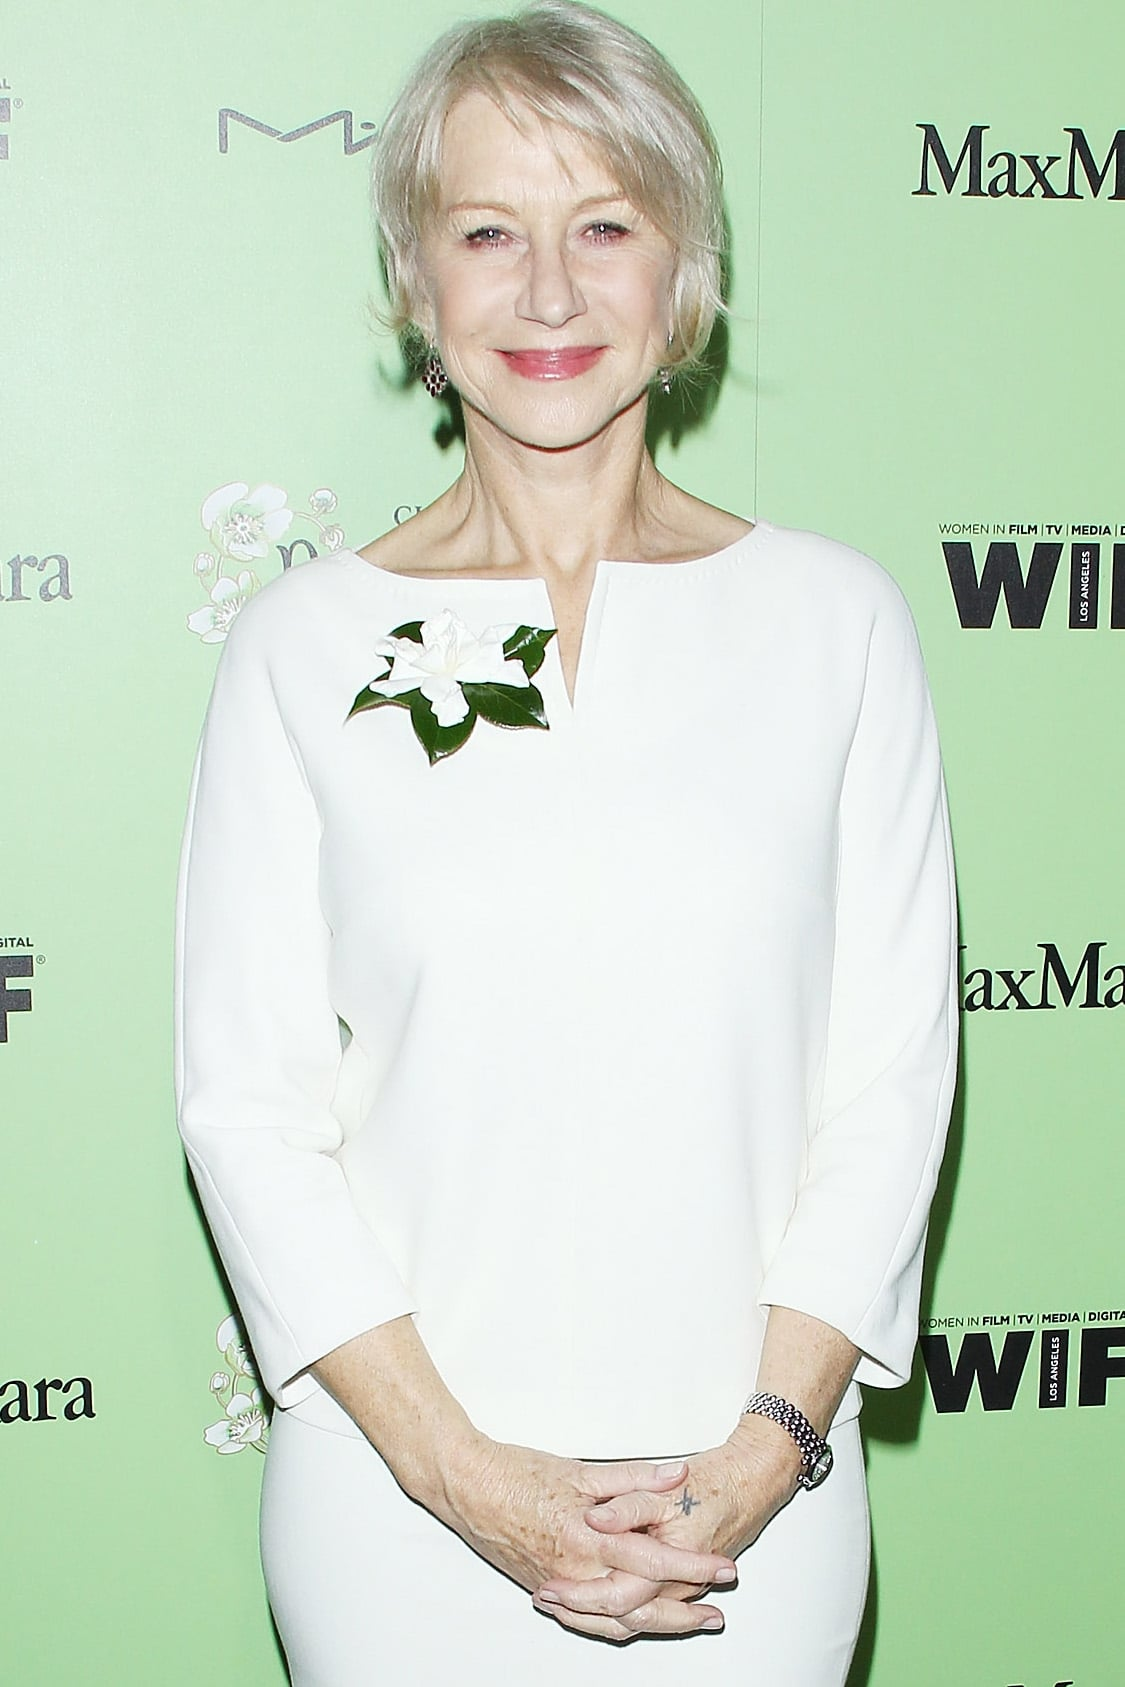 Helen Mirren joined Trumbo, alongside Bryan Cranston. The biopic is about blacklisted screenwriter Dalton Trumbo, one of the Hollywood 10.